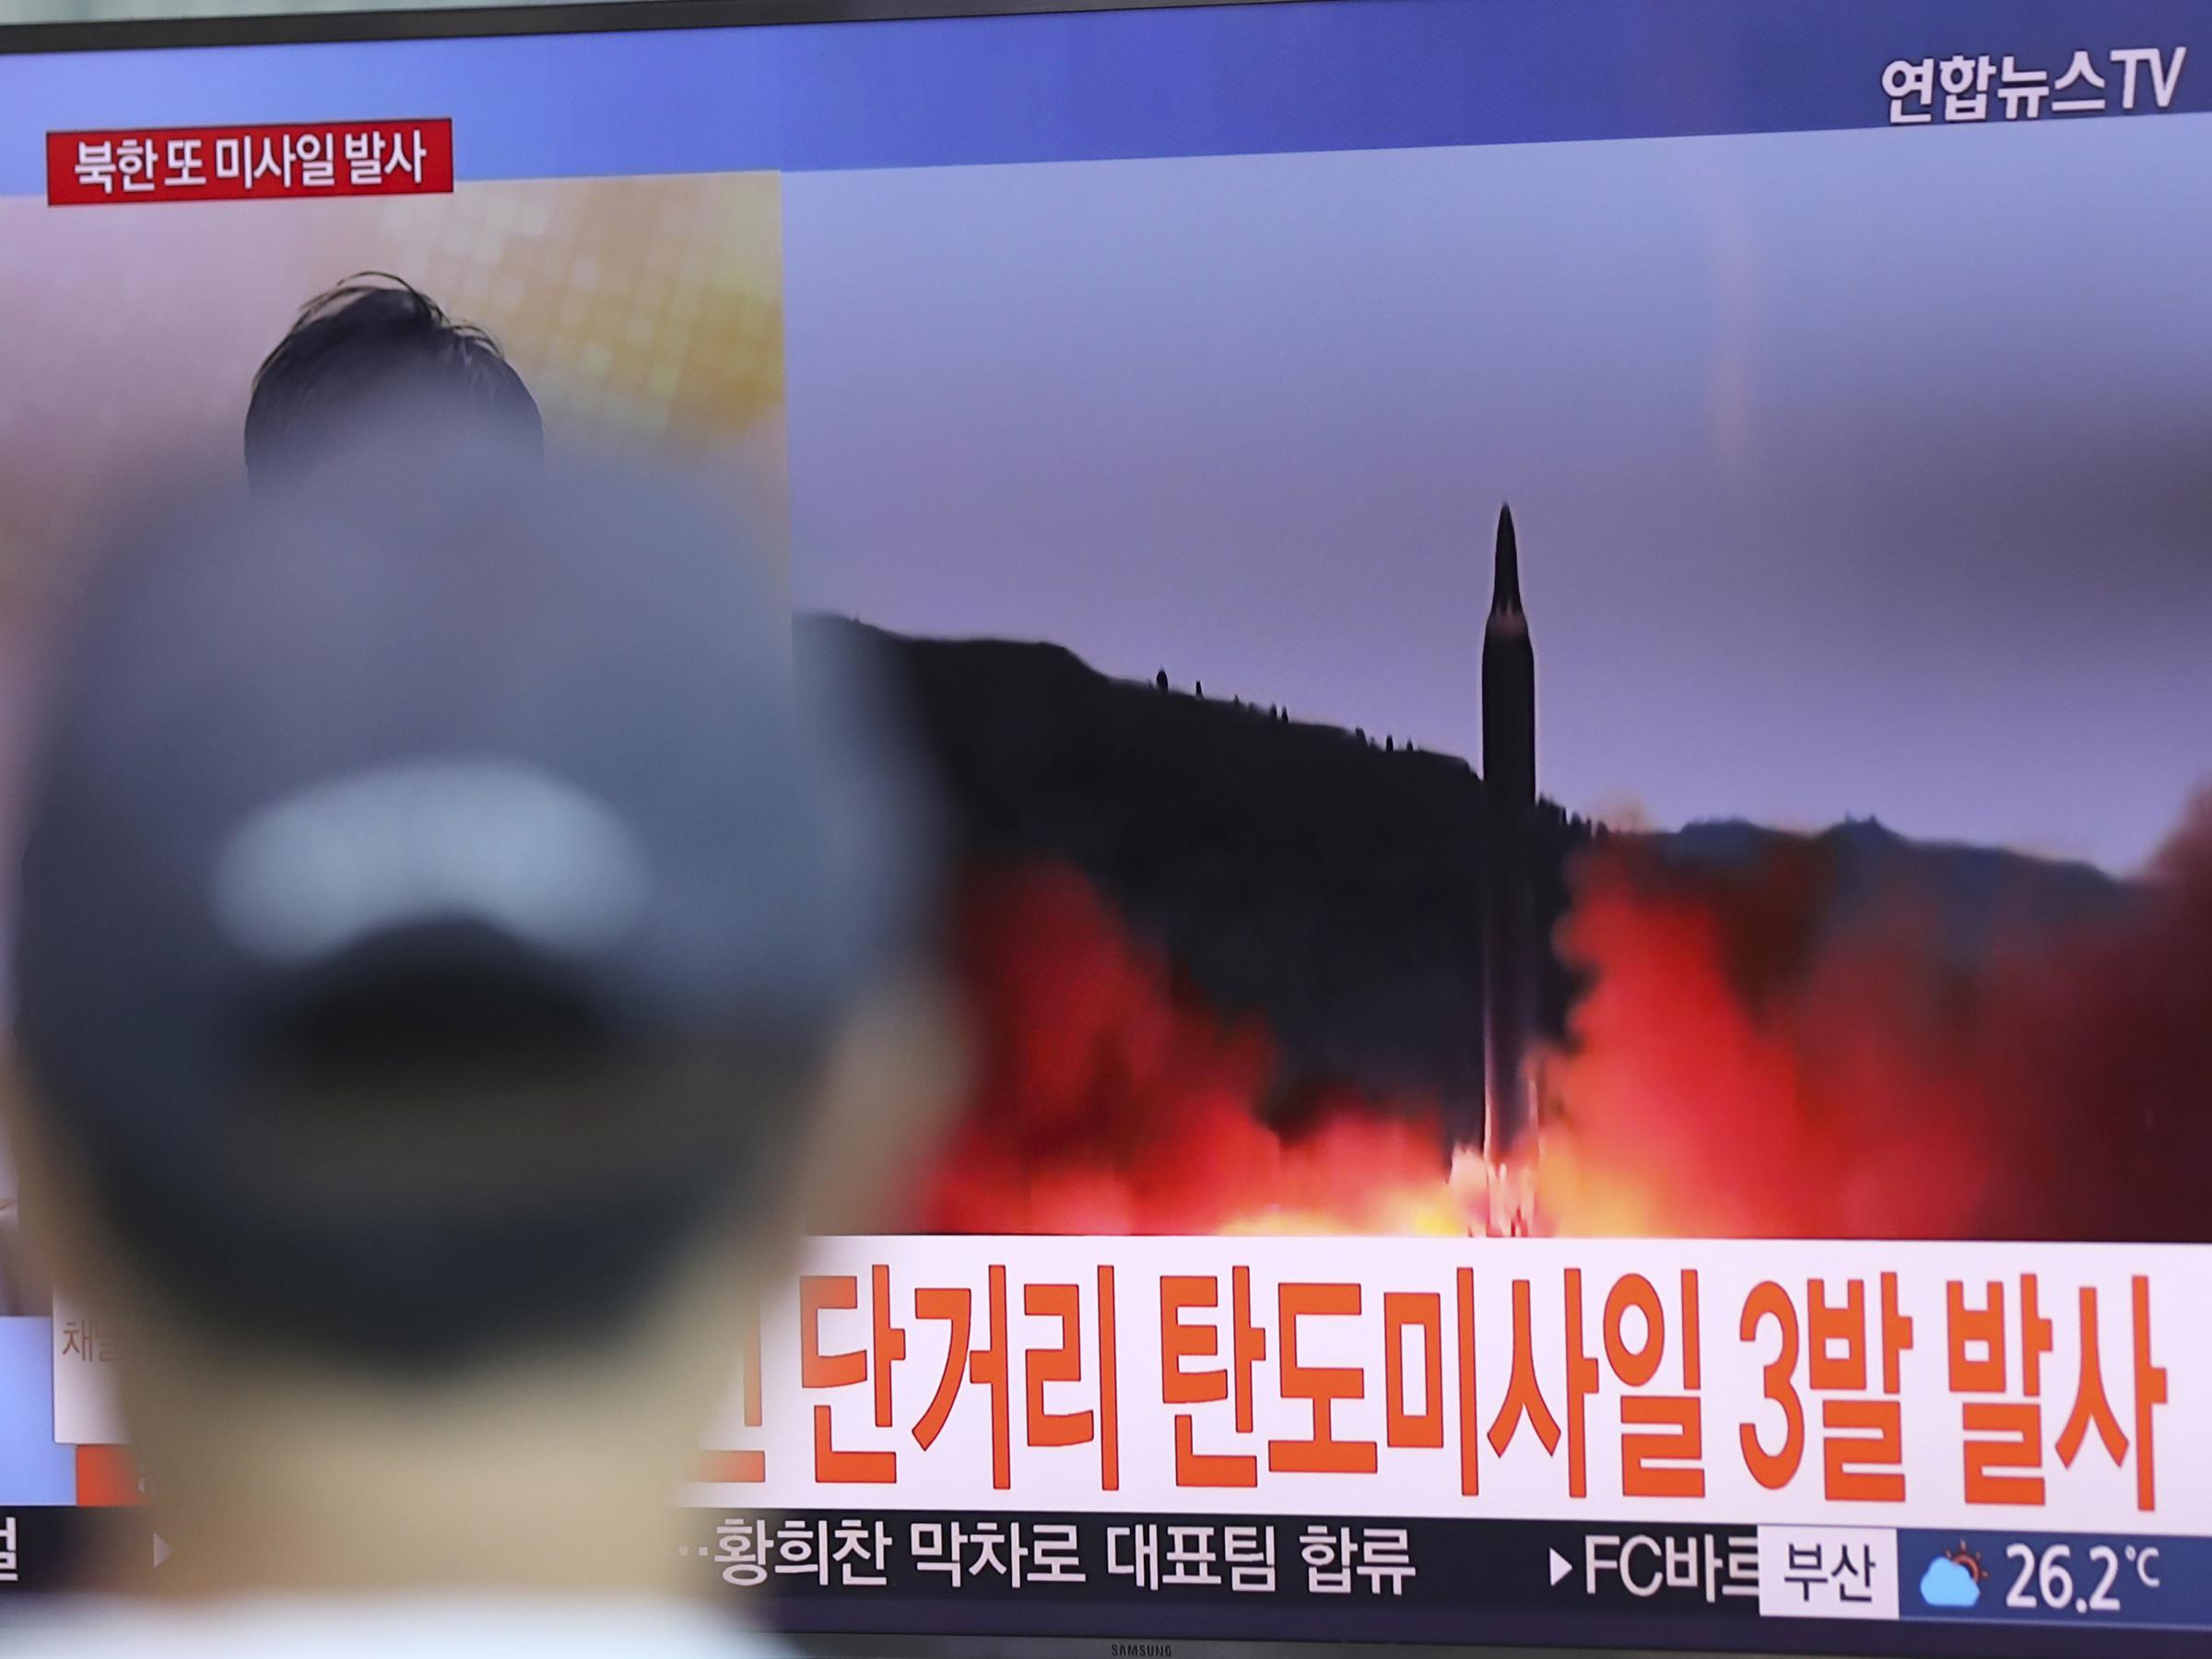 U.S. revises assessment of N. Korea launch